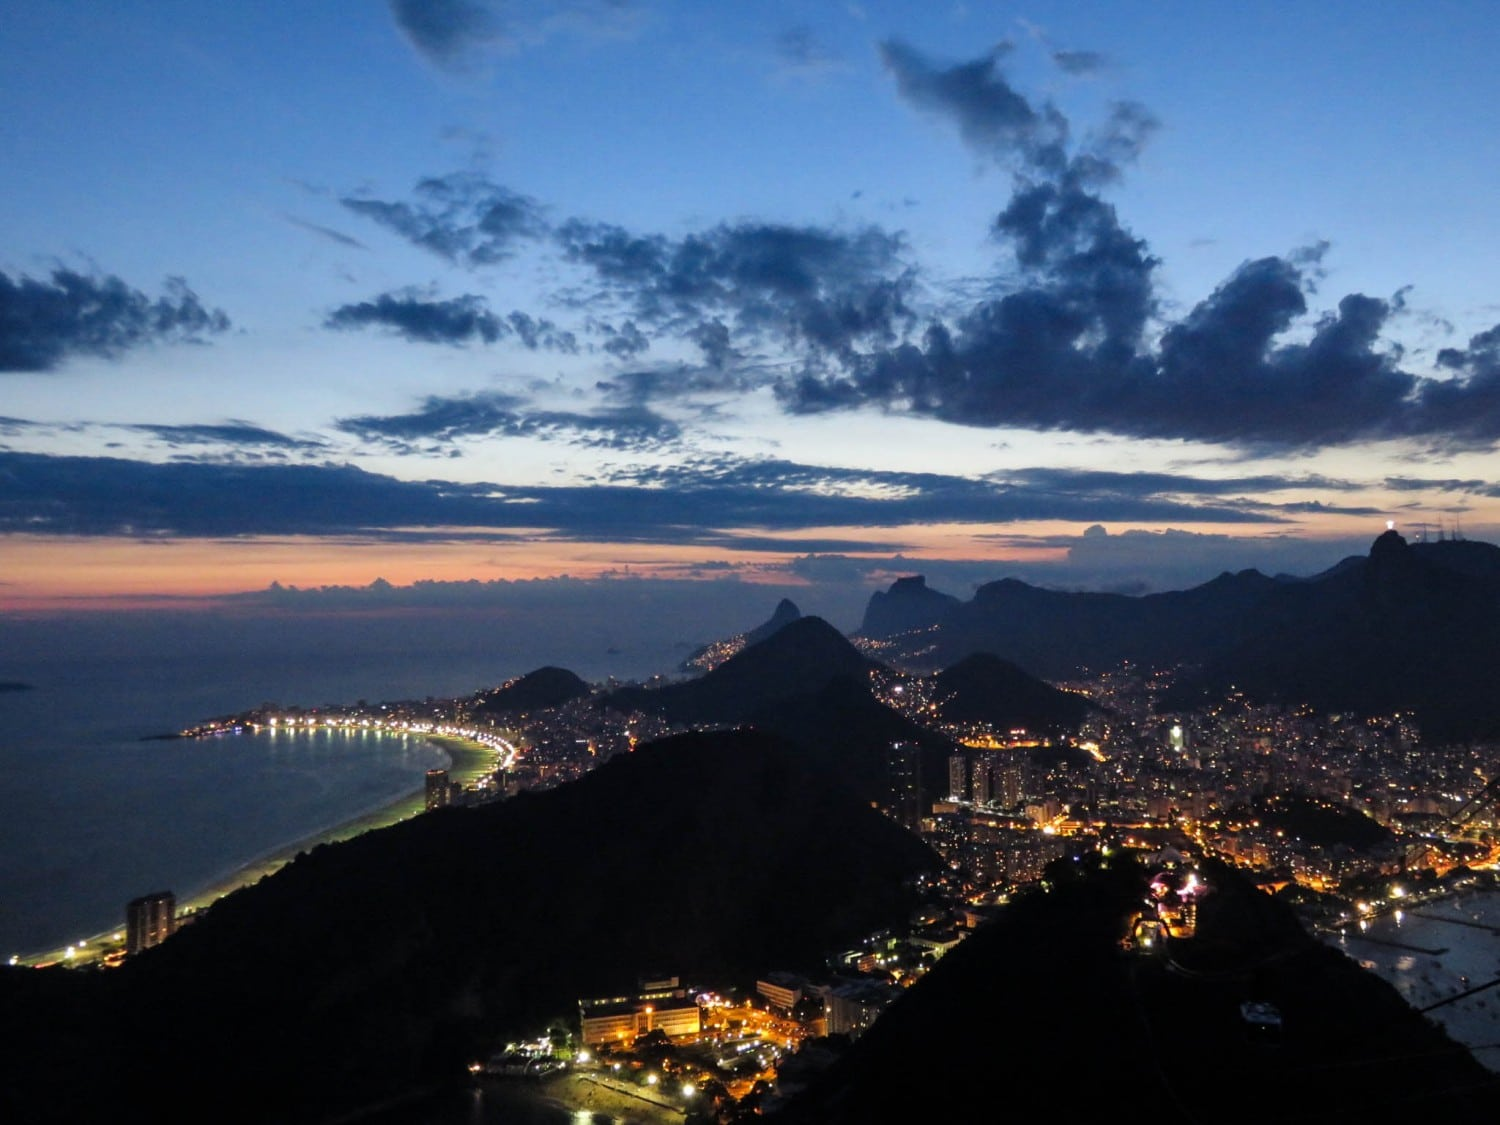 The View at Sunset from the Sugar Loaf Mountain Brazil